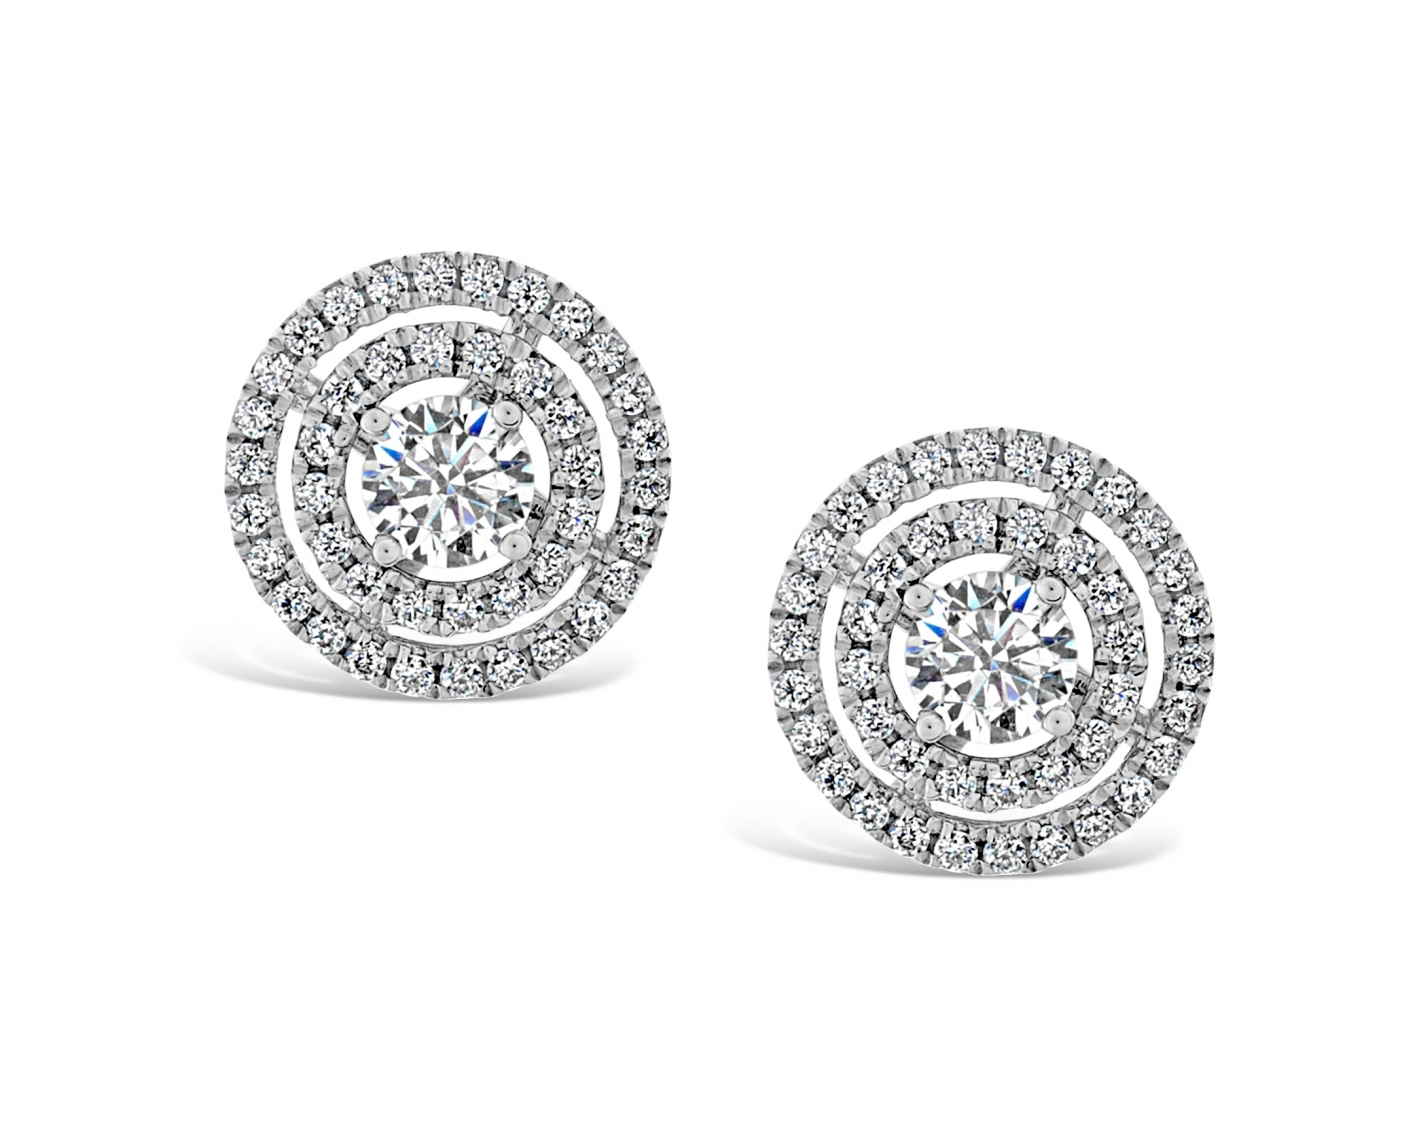 18k white gold double halo diamond earring studs Photos & images